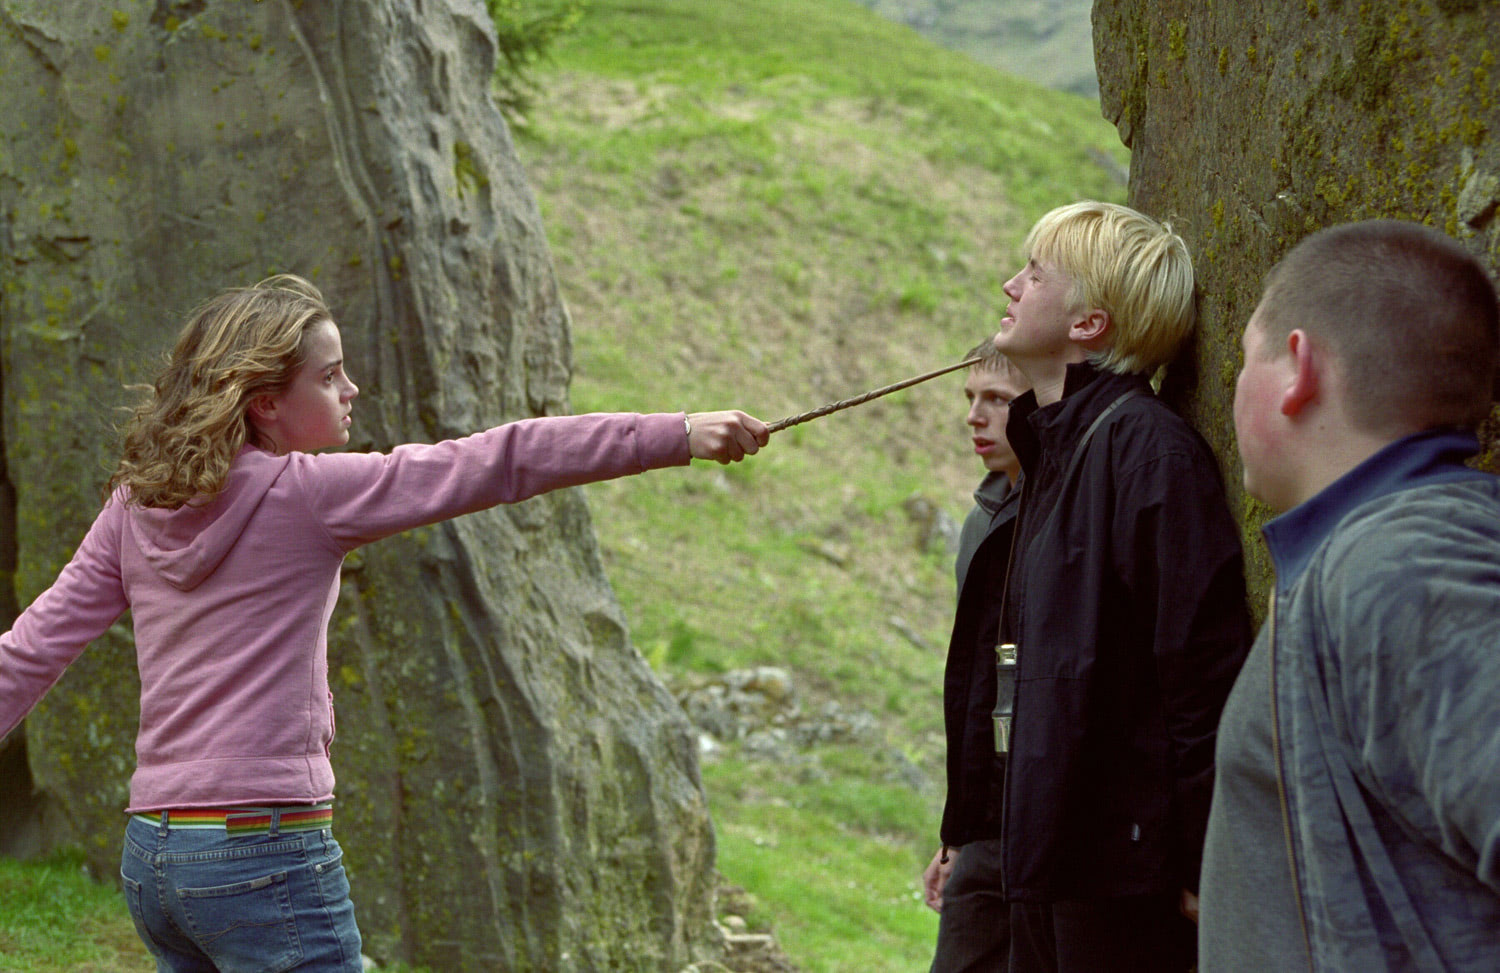 Hermione with wand pointed at Draco